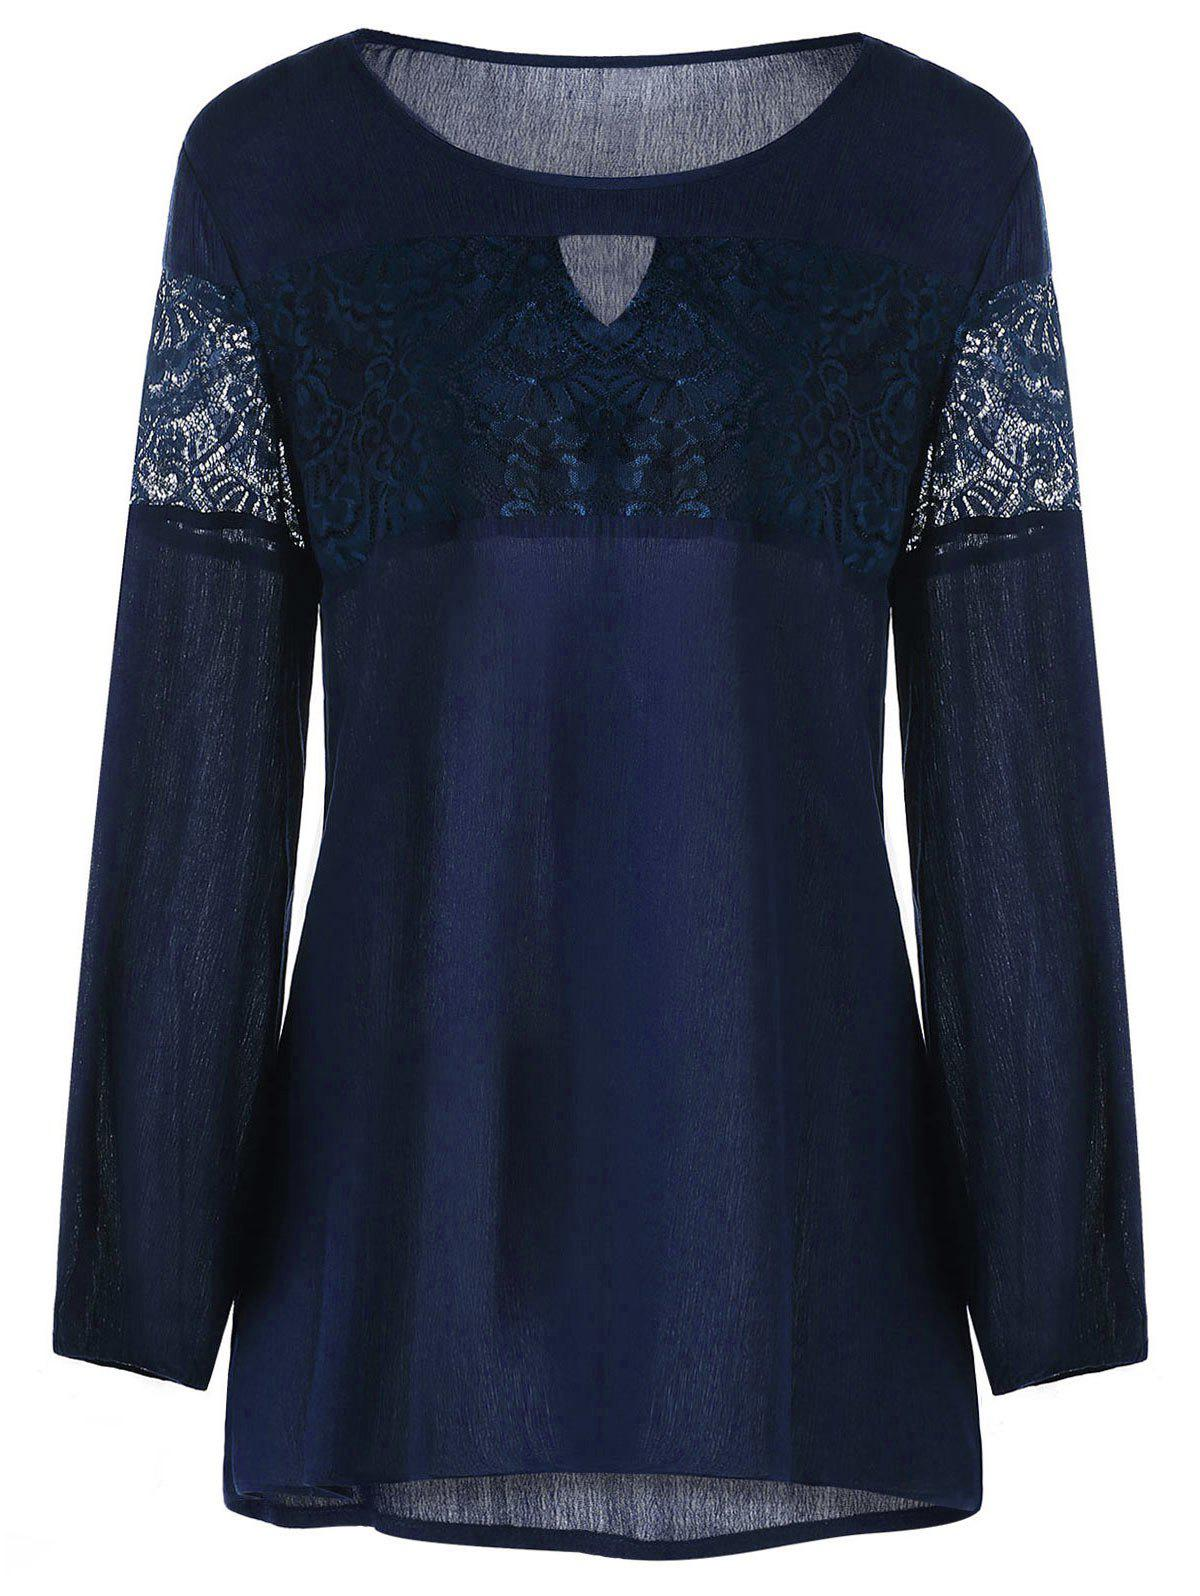 Plus Size Lace Trim Keyhole Neck BlouseWOMEN<br><br>Size: 3XL; Color: PURPLISH BLUE; Material: Rayon,Spandex; Shirt Length: Long; Sleeve Length: Full; Collar: Keyhole Neck; Style: Active; Season: Fall,Spring,Summer; Embellishment: Lace; Pattern Type: Solid; Weight: 0.2400kg; Package Contents: 1 x Blouse;